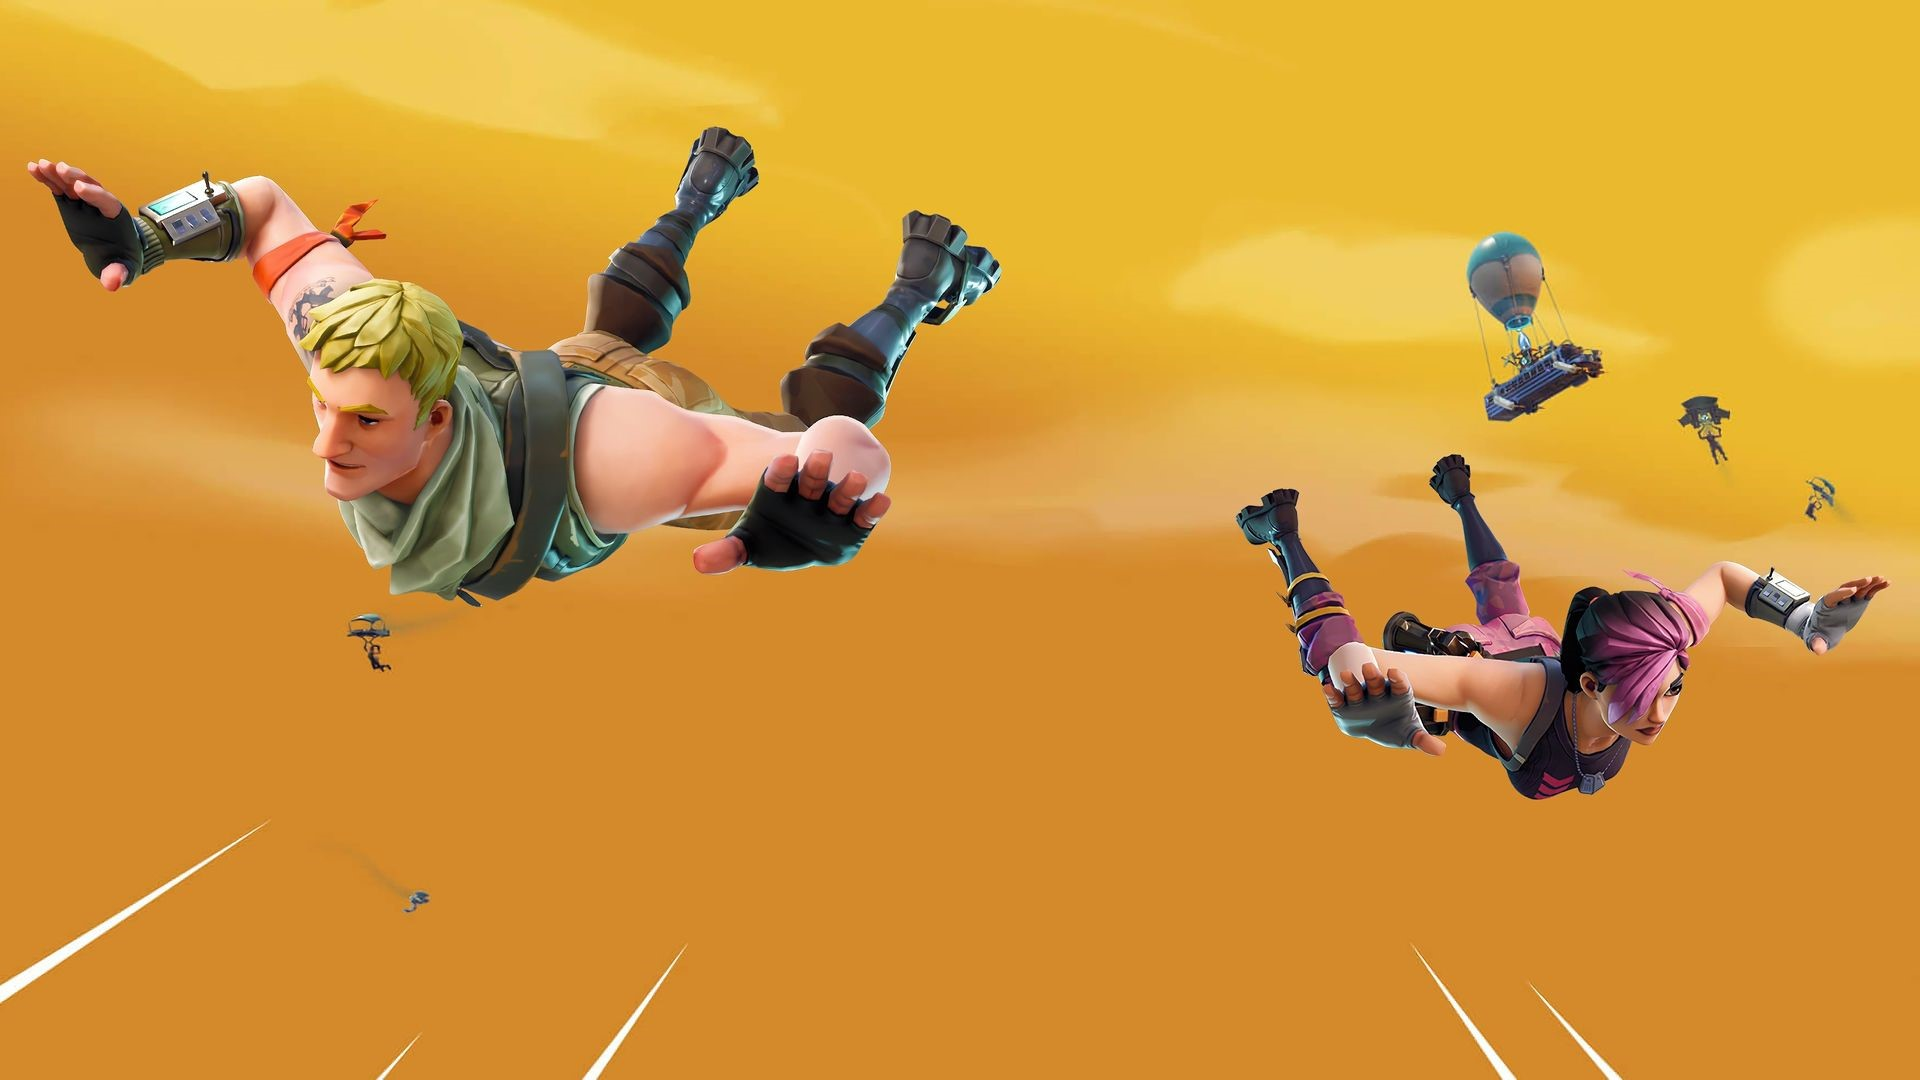 Fortnite Balloon Jump in Field 4K Wallpaper